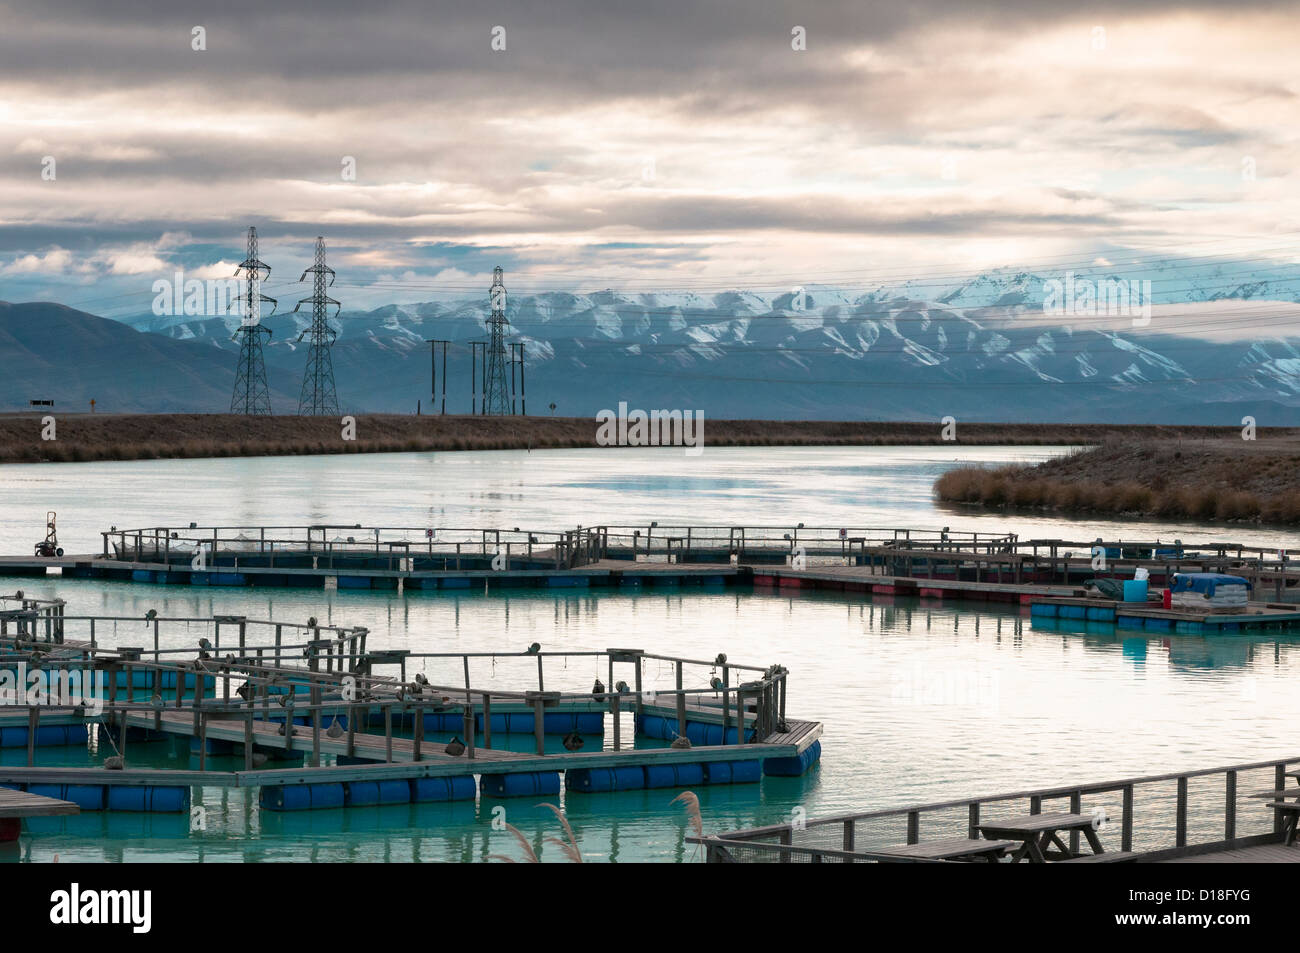 Fish Farm in rural landscape Photo Stock